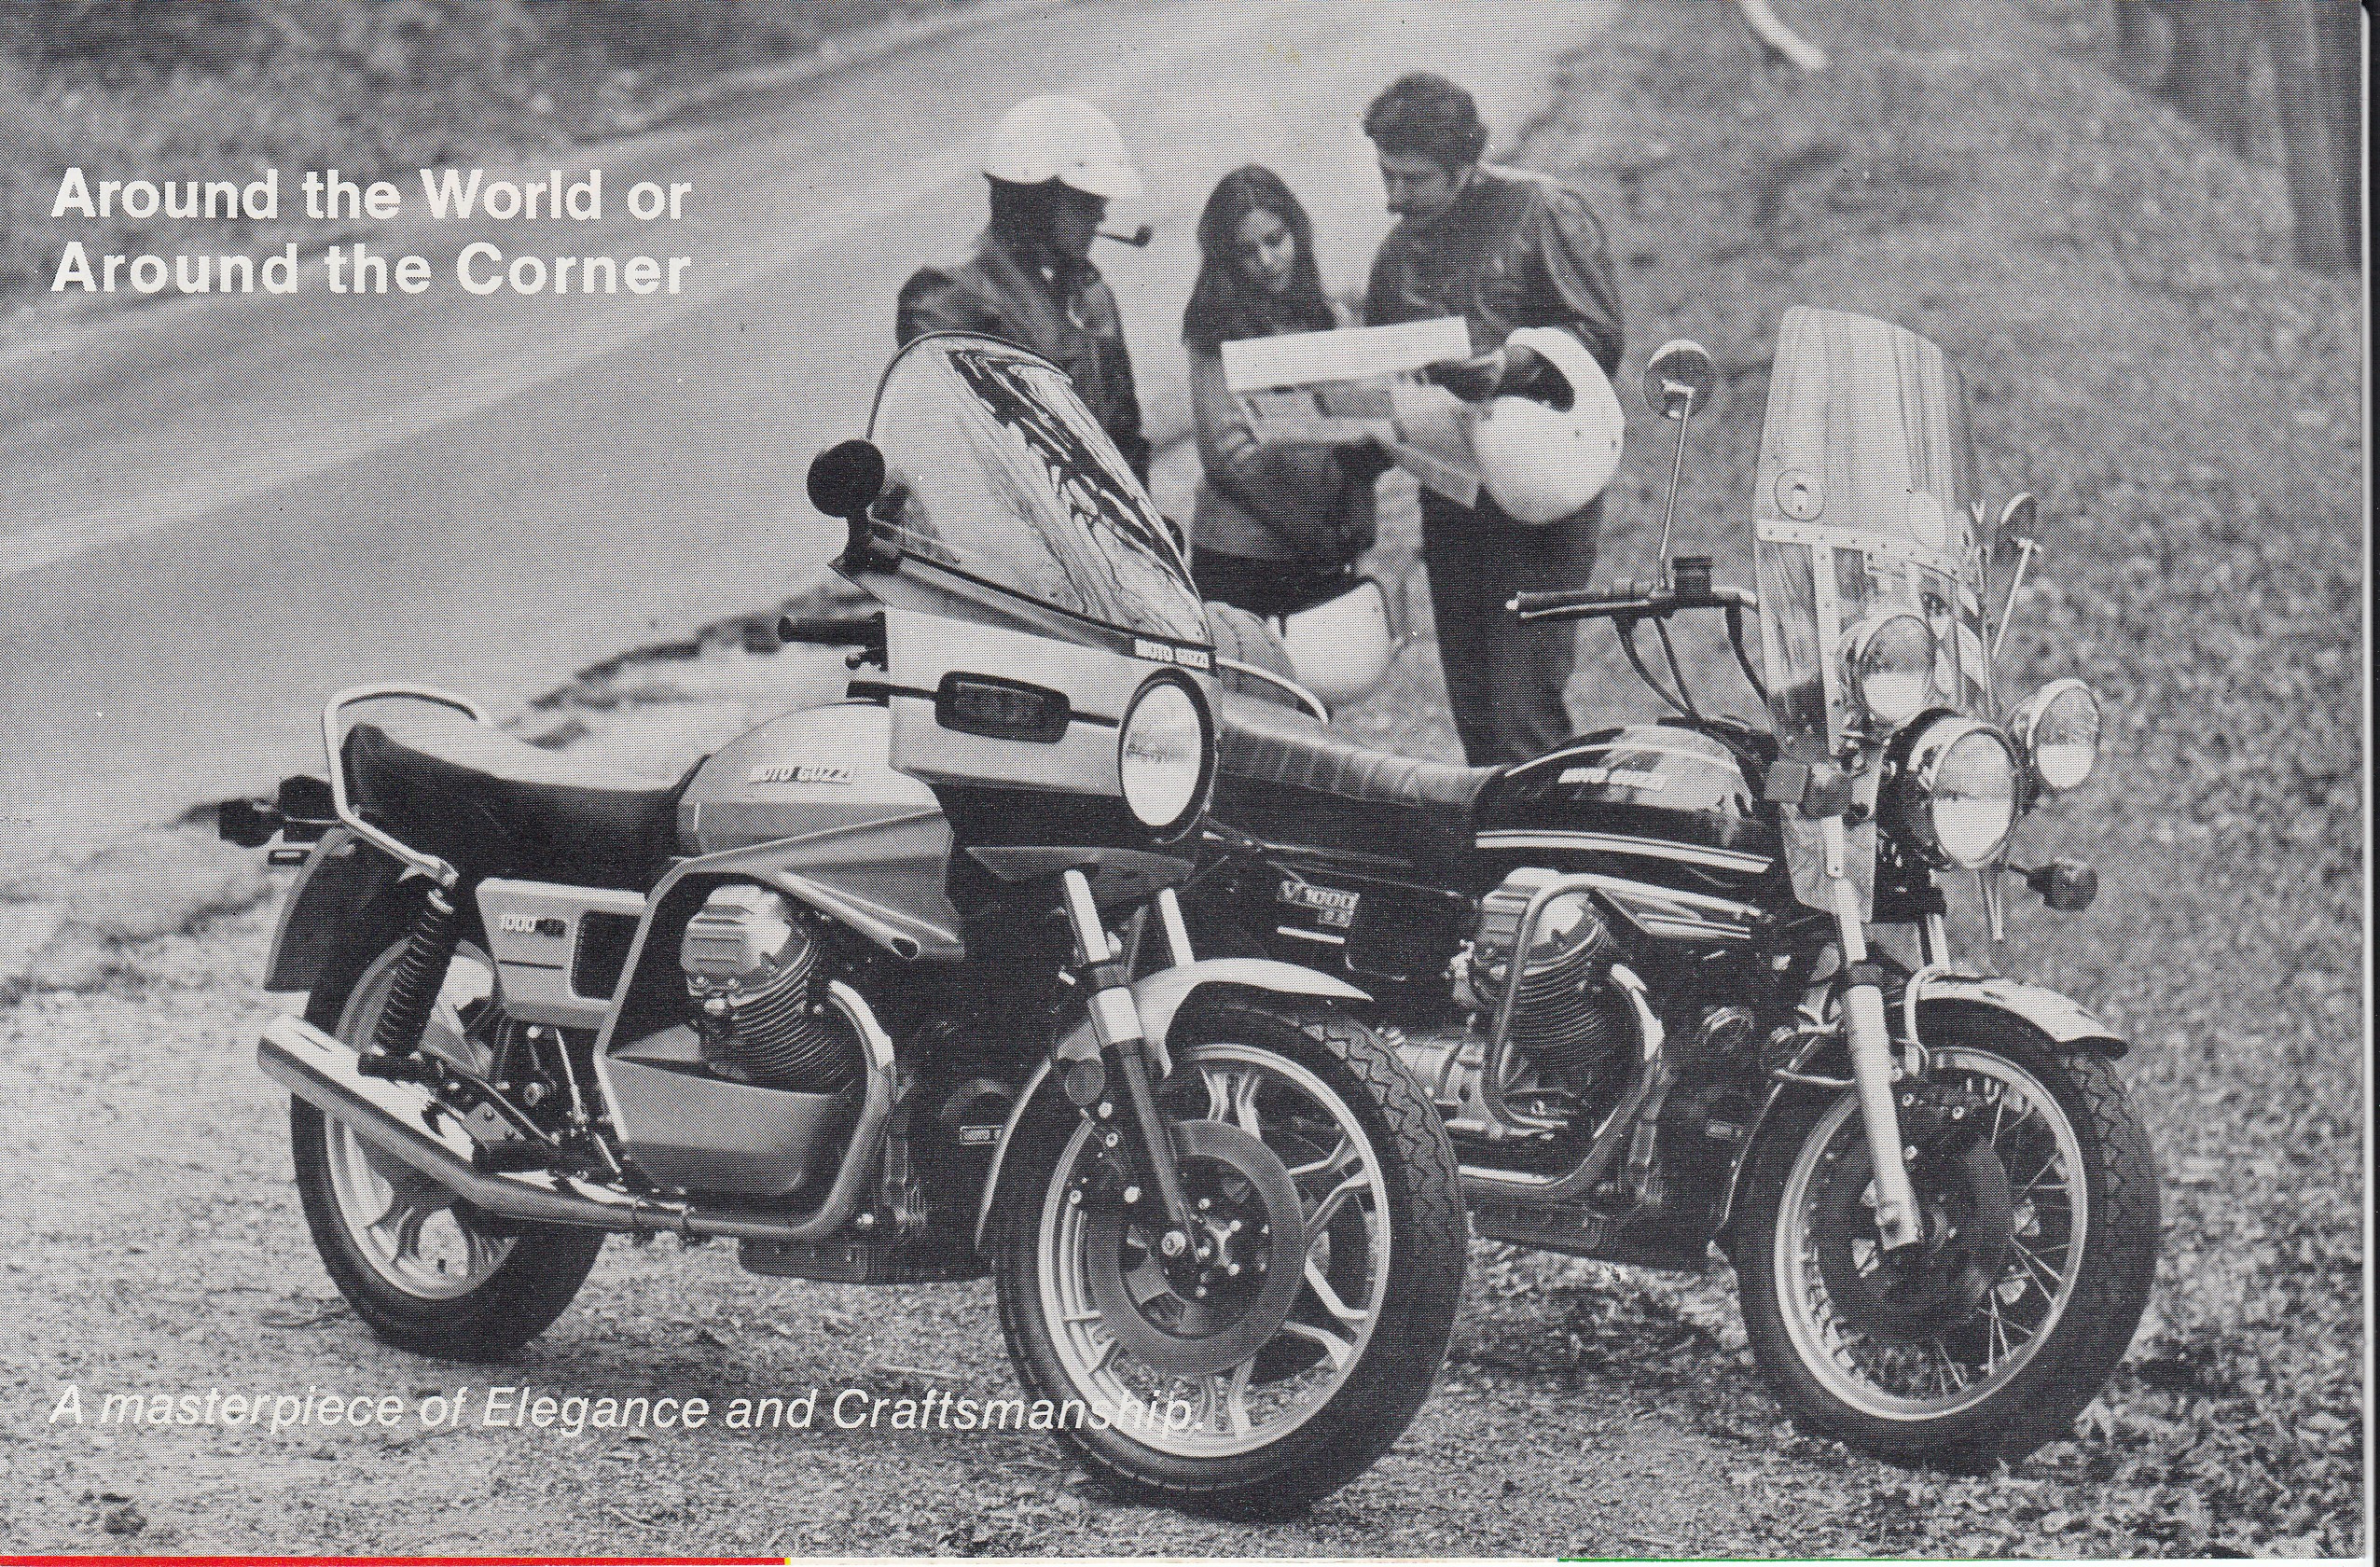 Brochure - Moto Guzzi V1000 G5 version 4